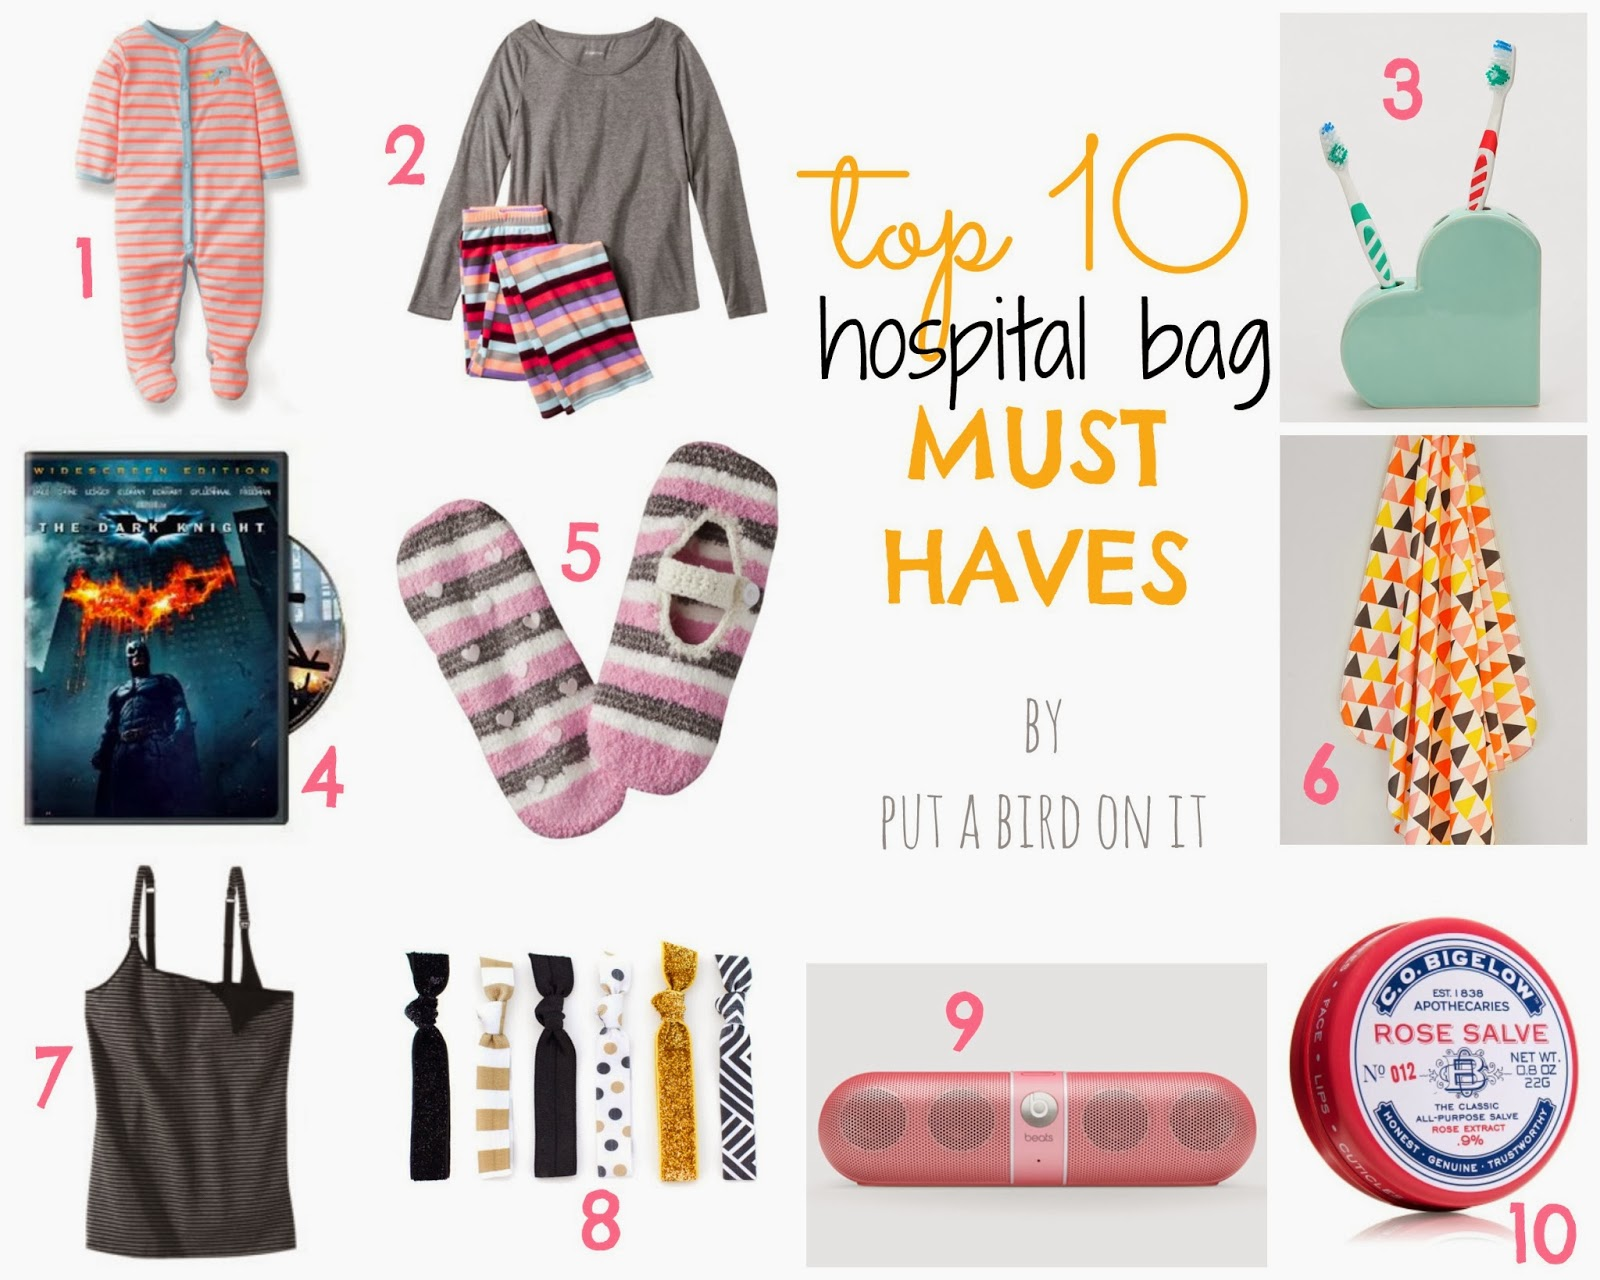 Put A Bird On It Top 10 Hospital Bag Must Haves